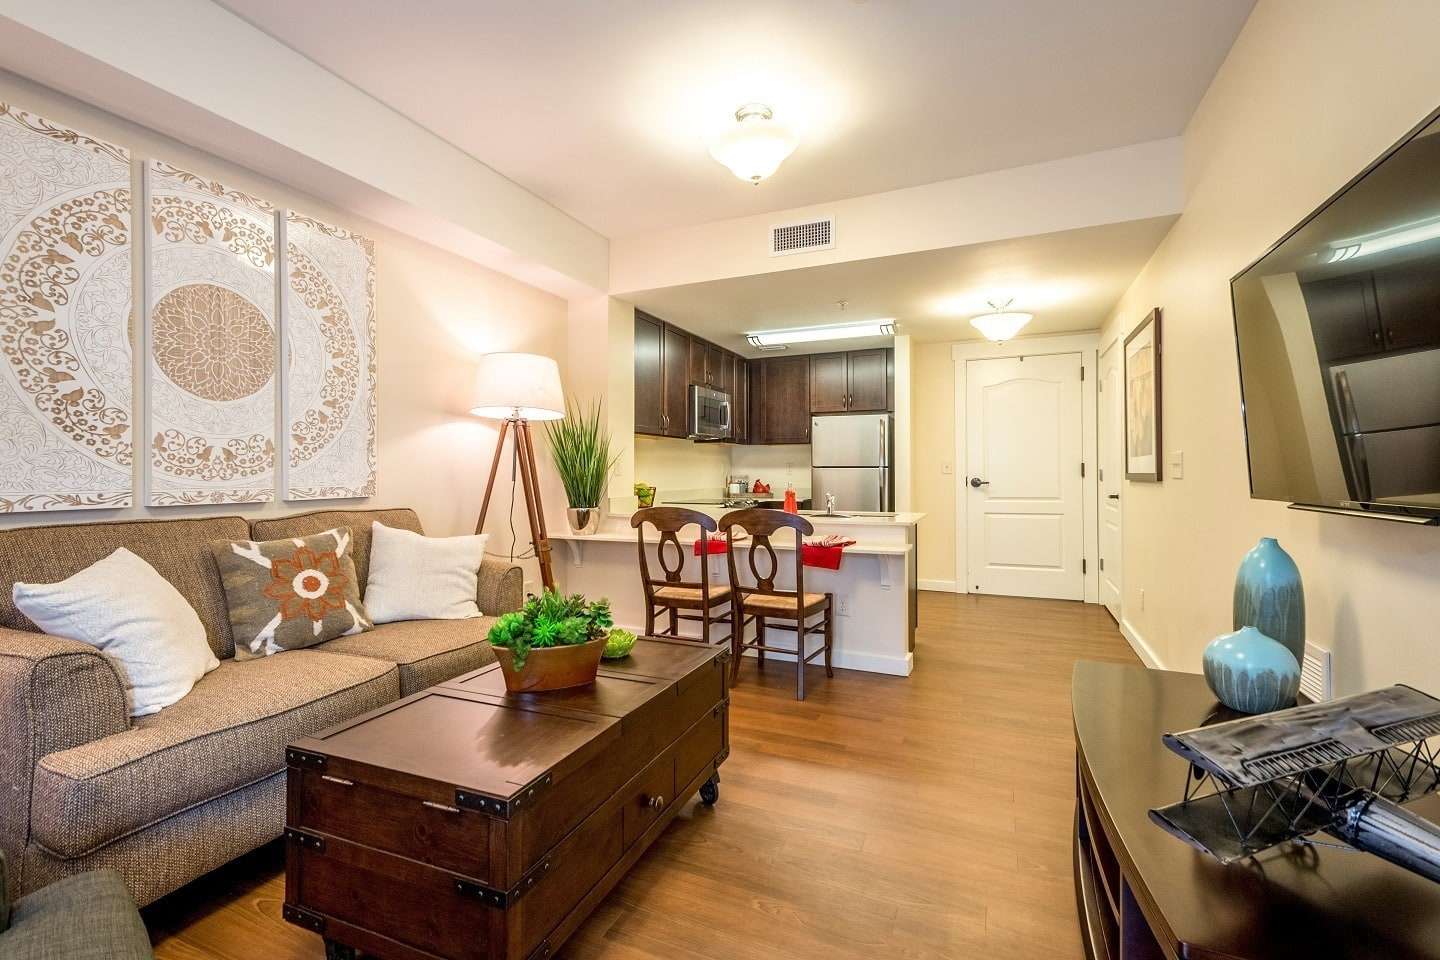 Senior living residents in Suwanee enjoy well-appointed apartment homes